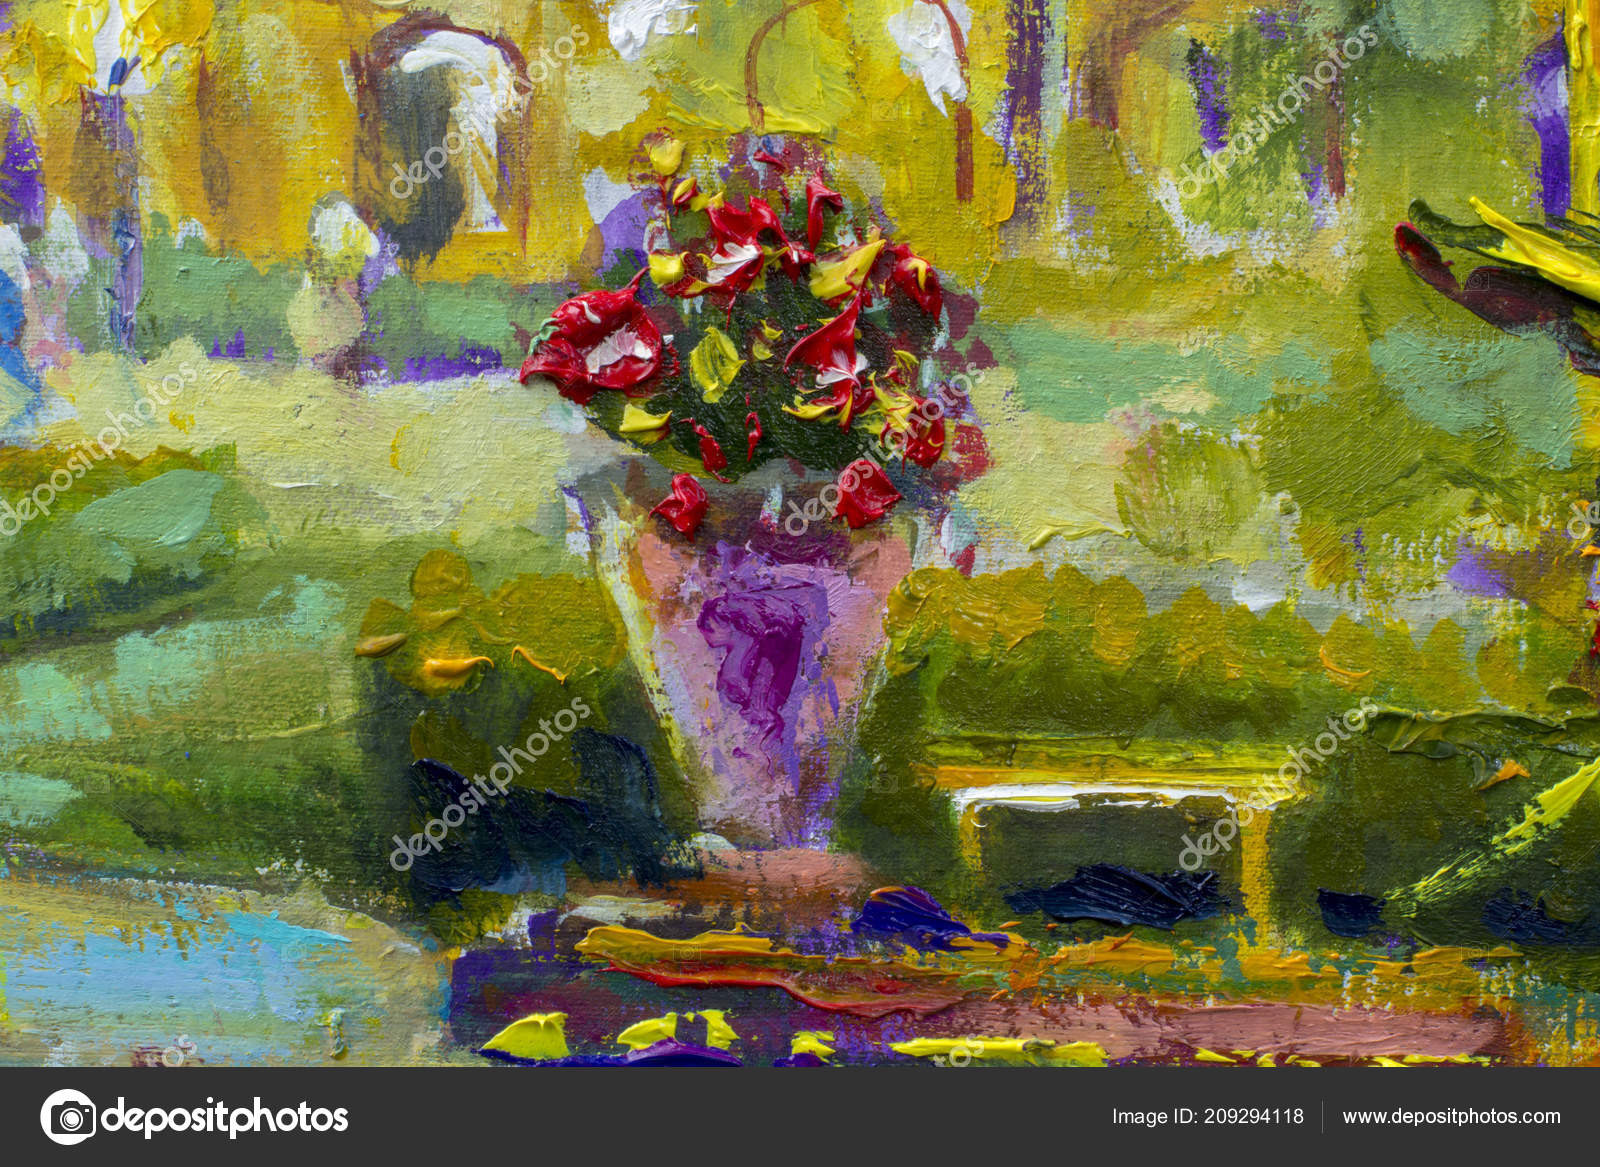 yellow flowers in vase painting of vase flowers fragment oil painting impressionism art stock throughout vase with flowers fragment of oil painting impressionism art fotografie od weris7554